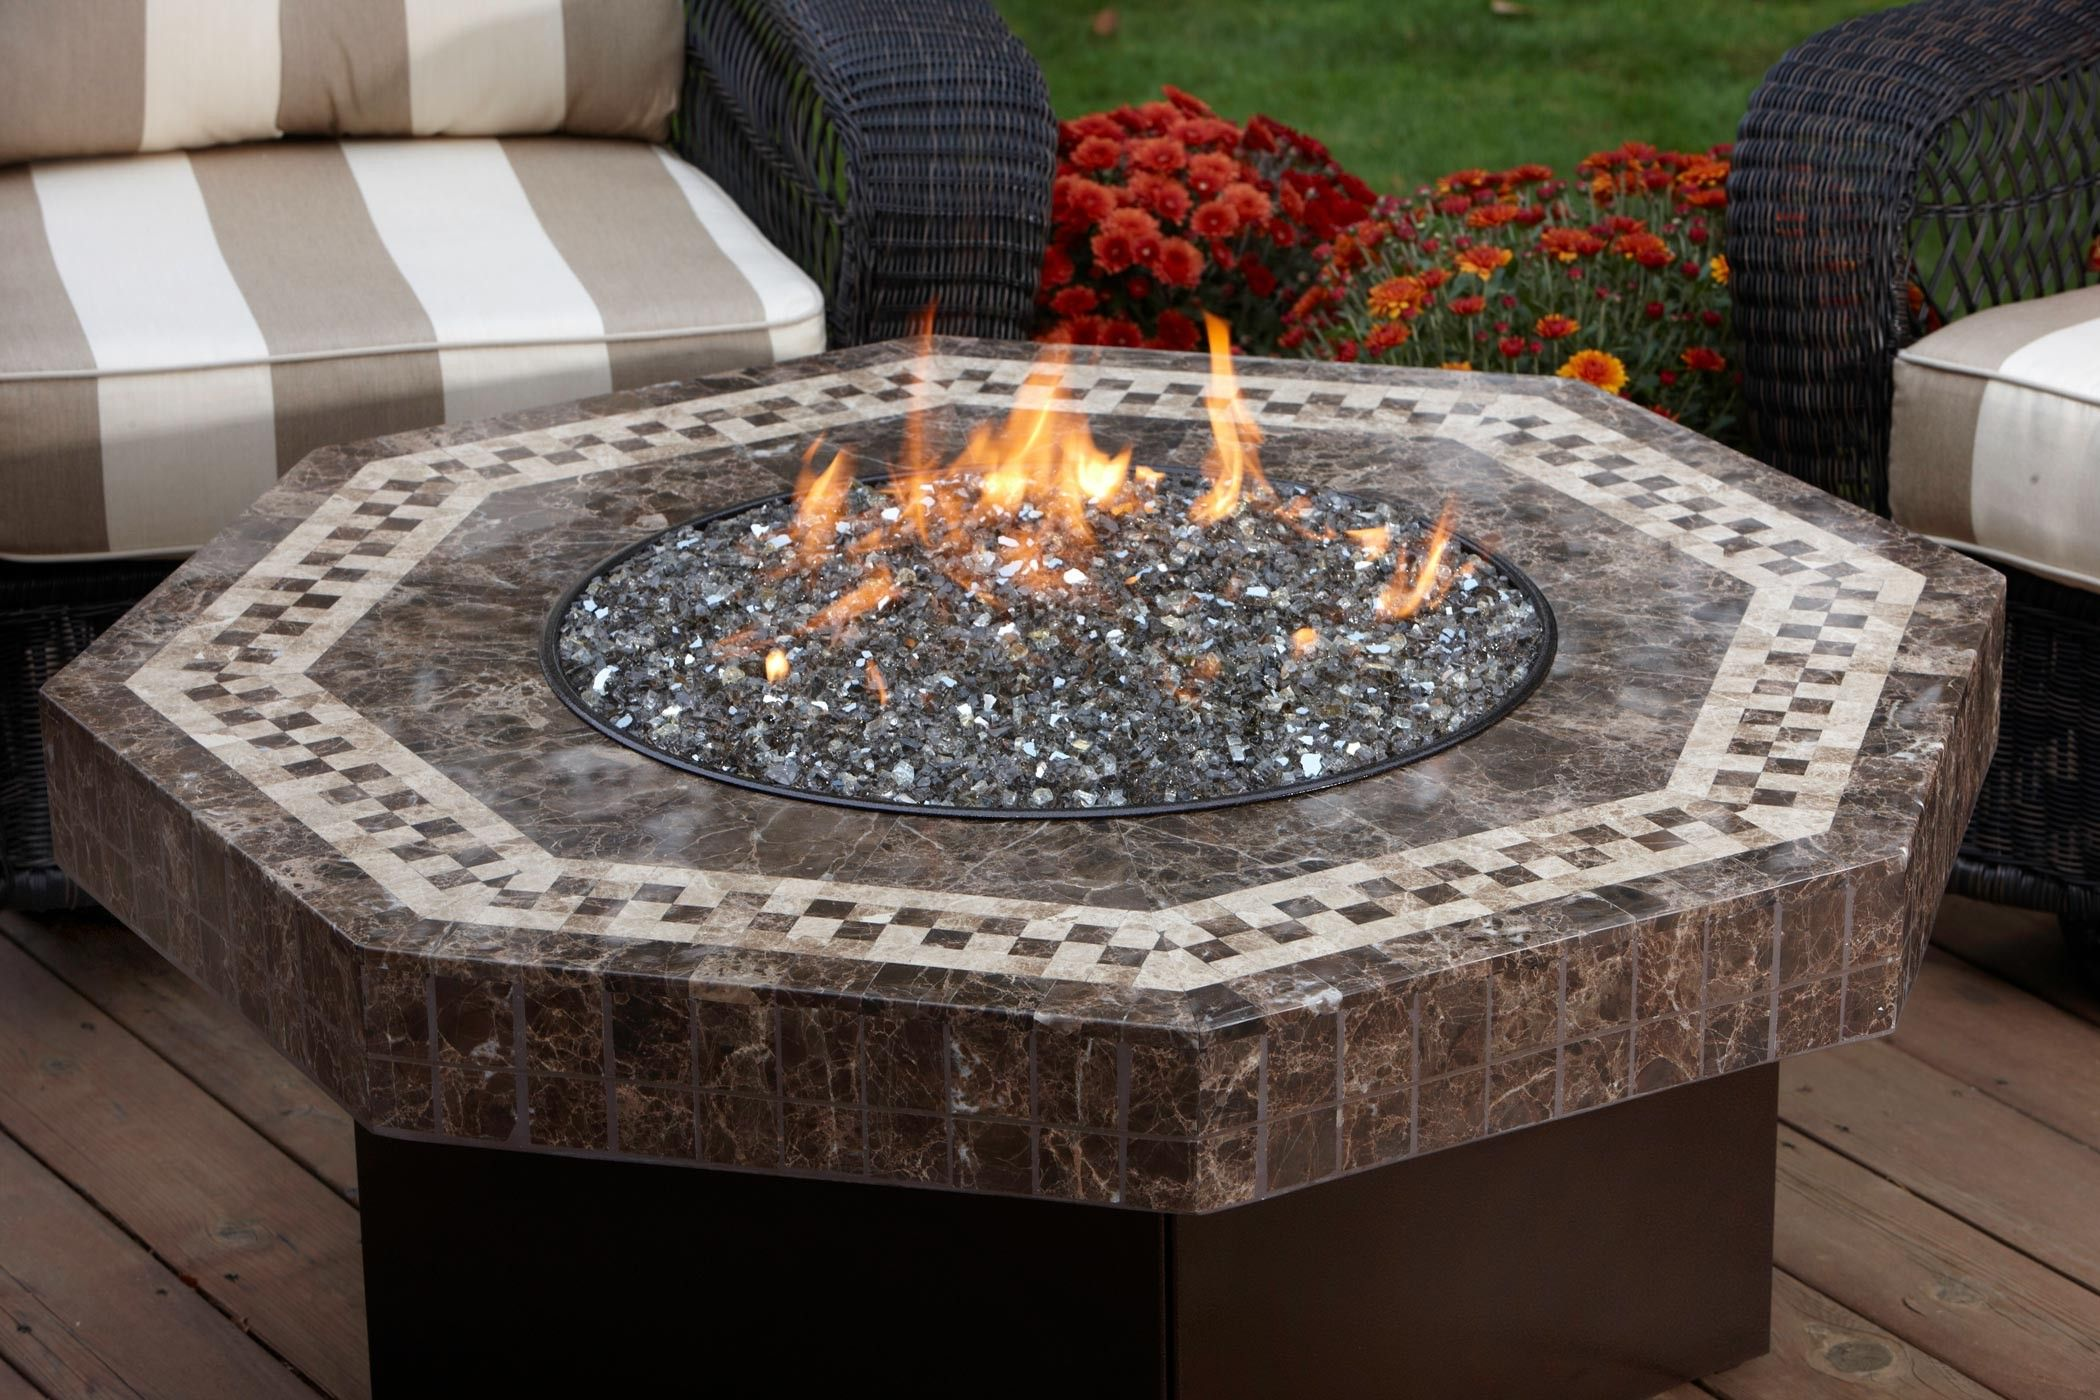 Marble fire table perfect for sipping wine and keeping